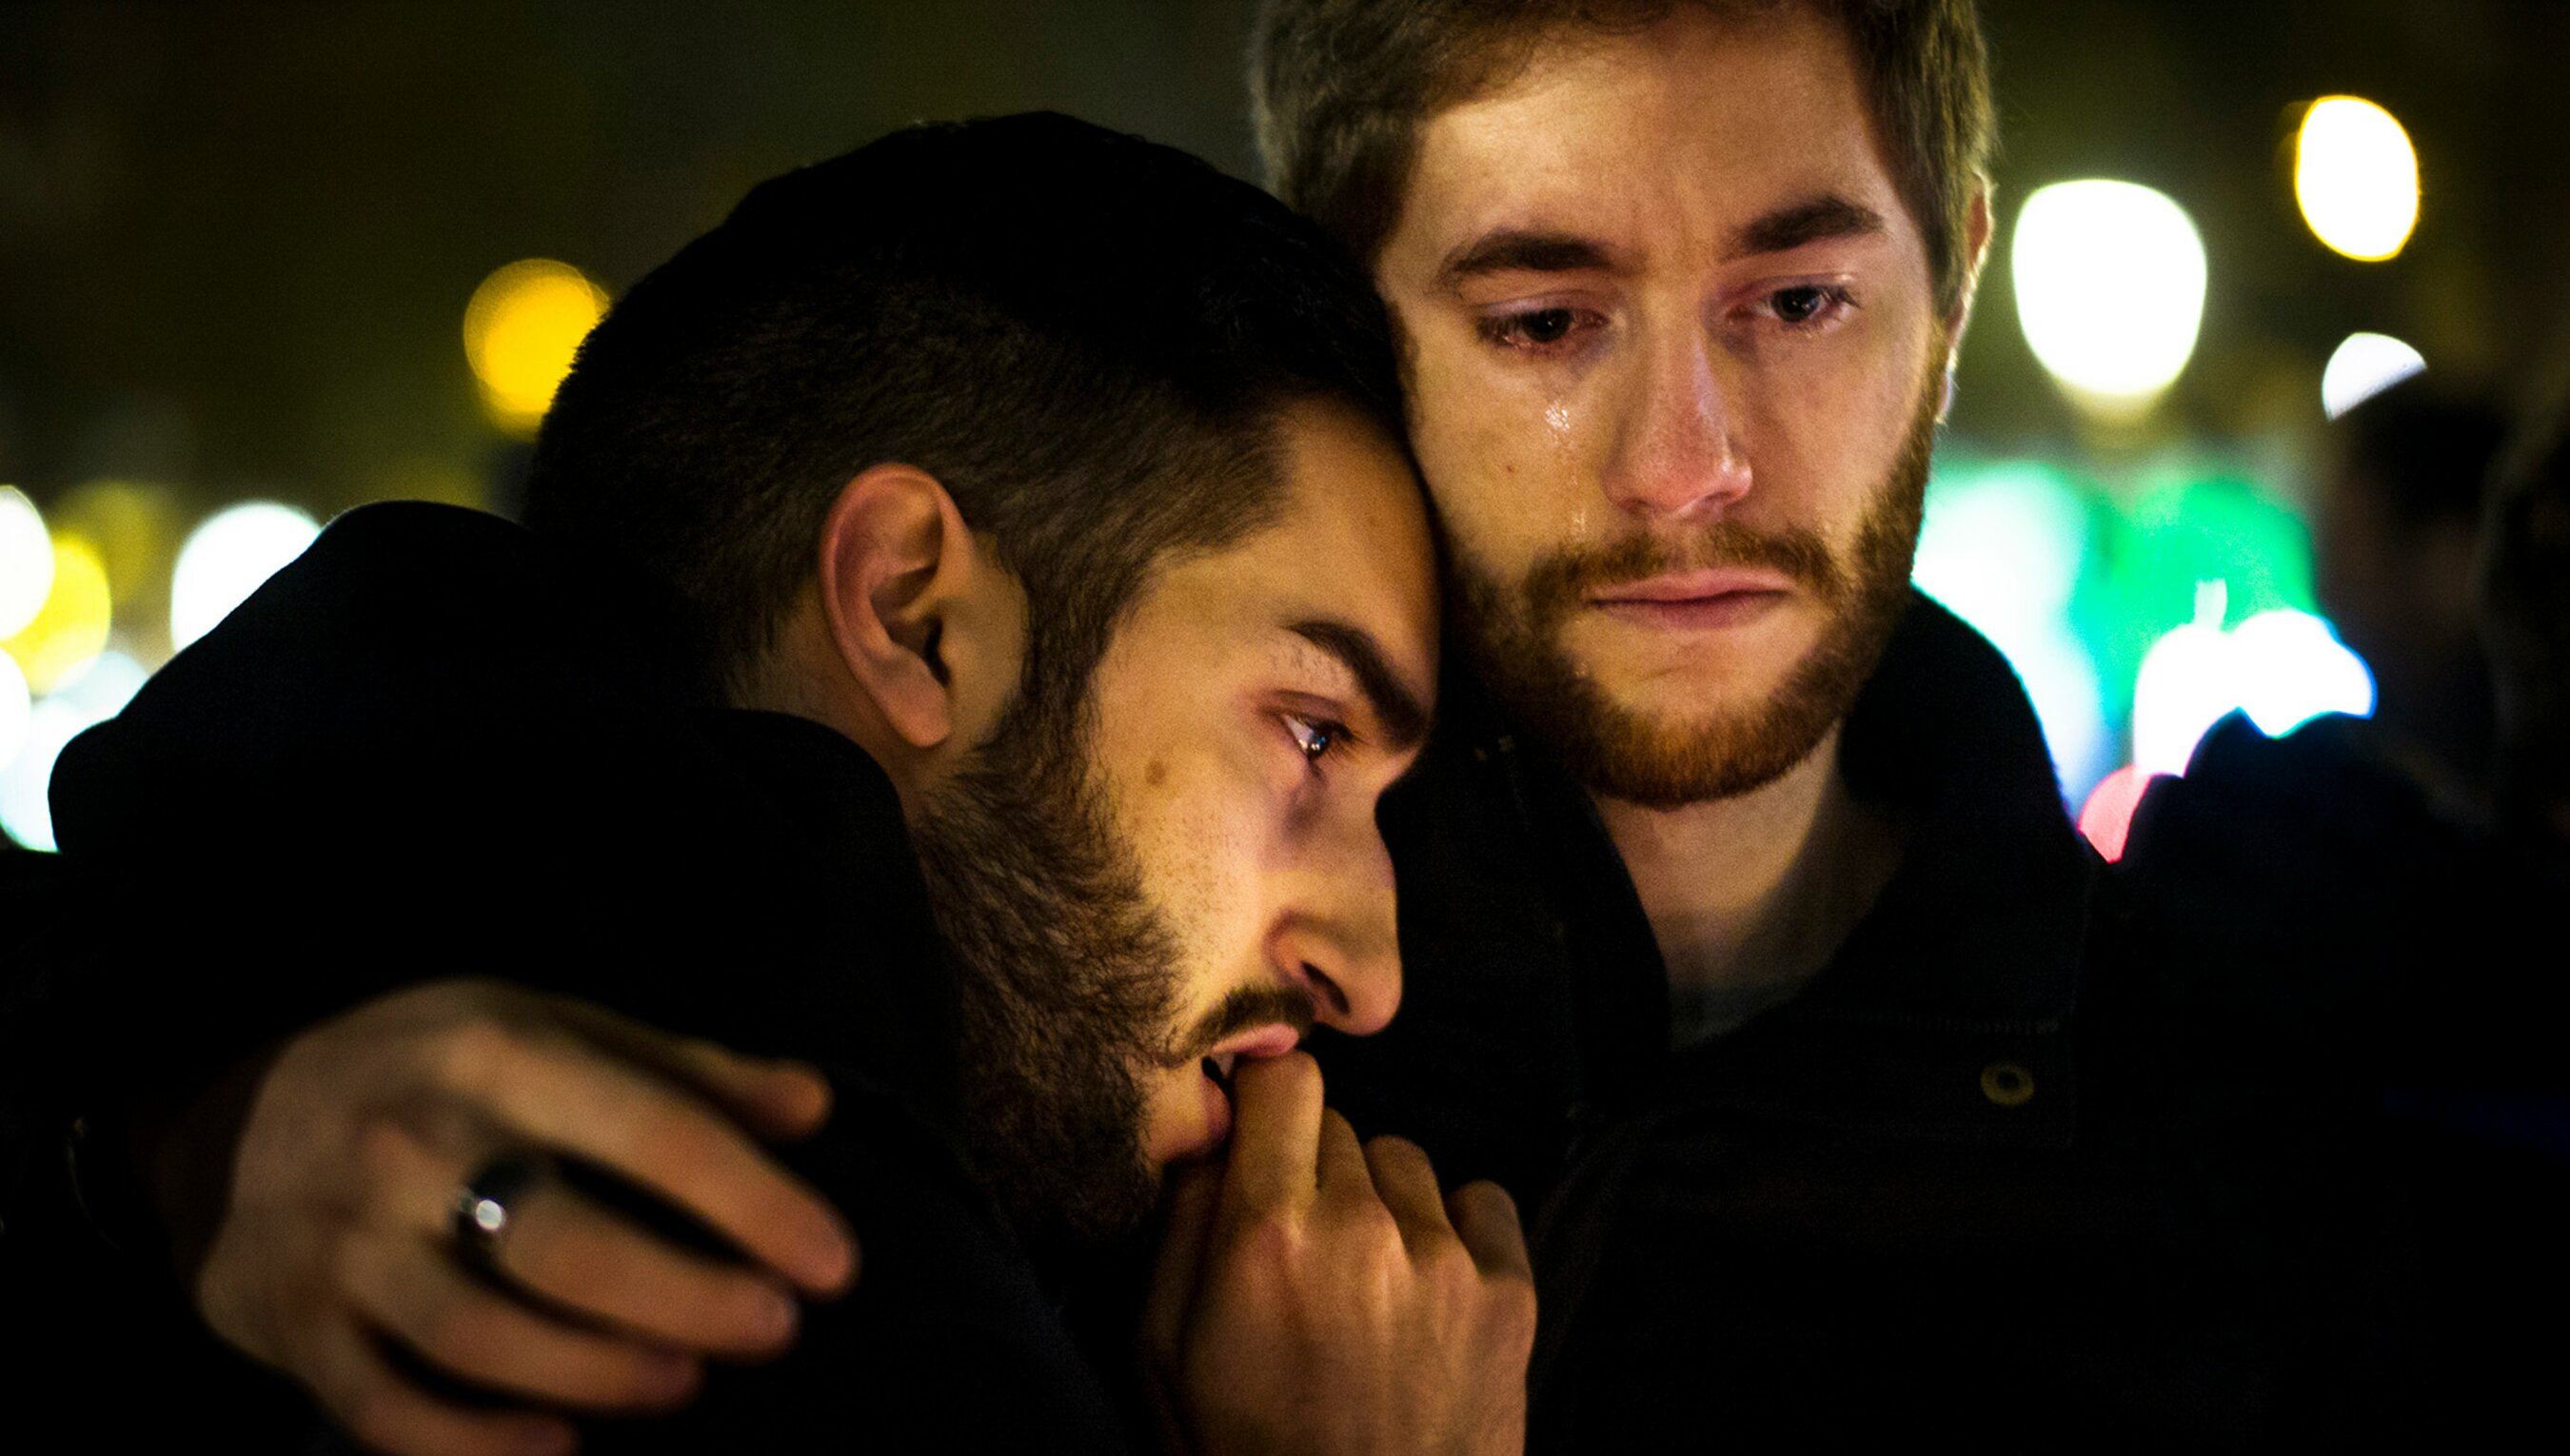 The hug from a stranger that helped me overcome my grief | Psyche